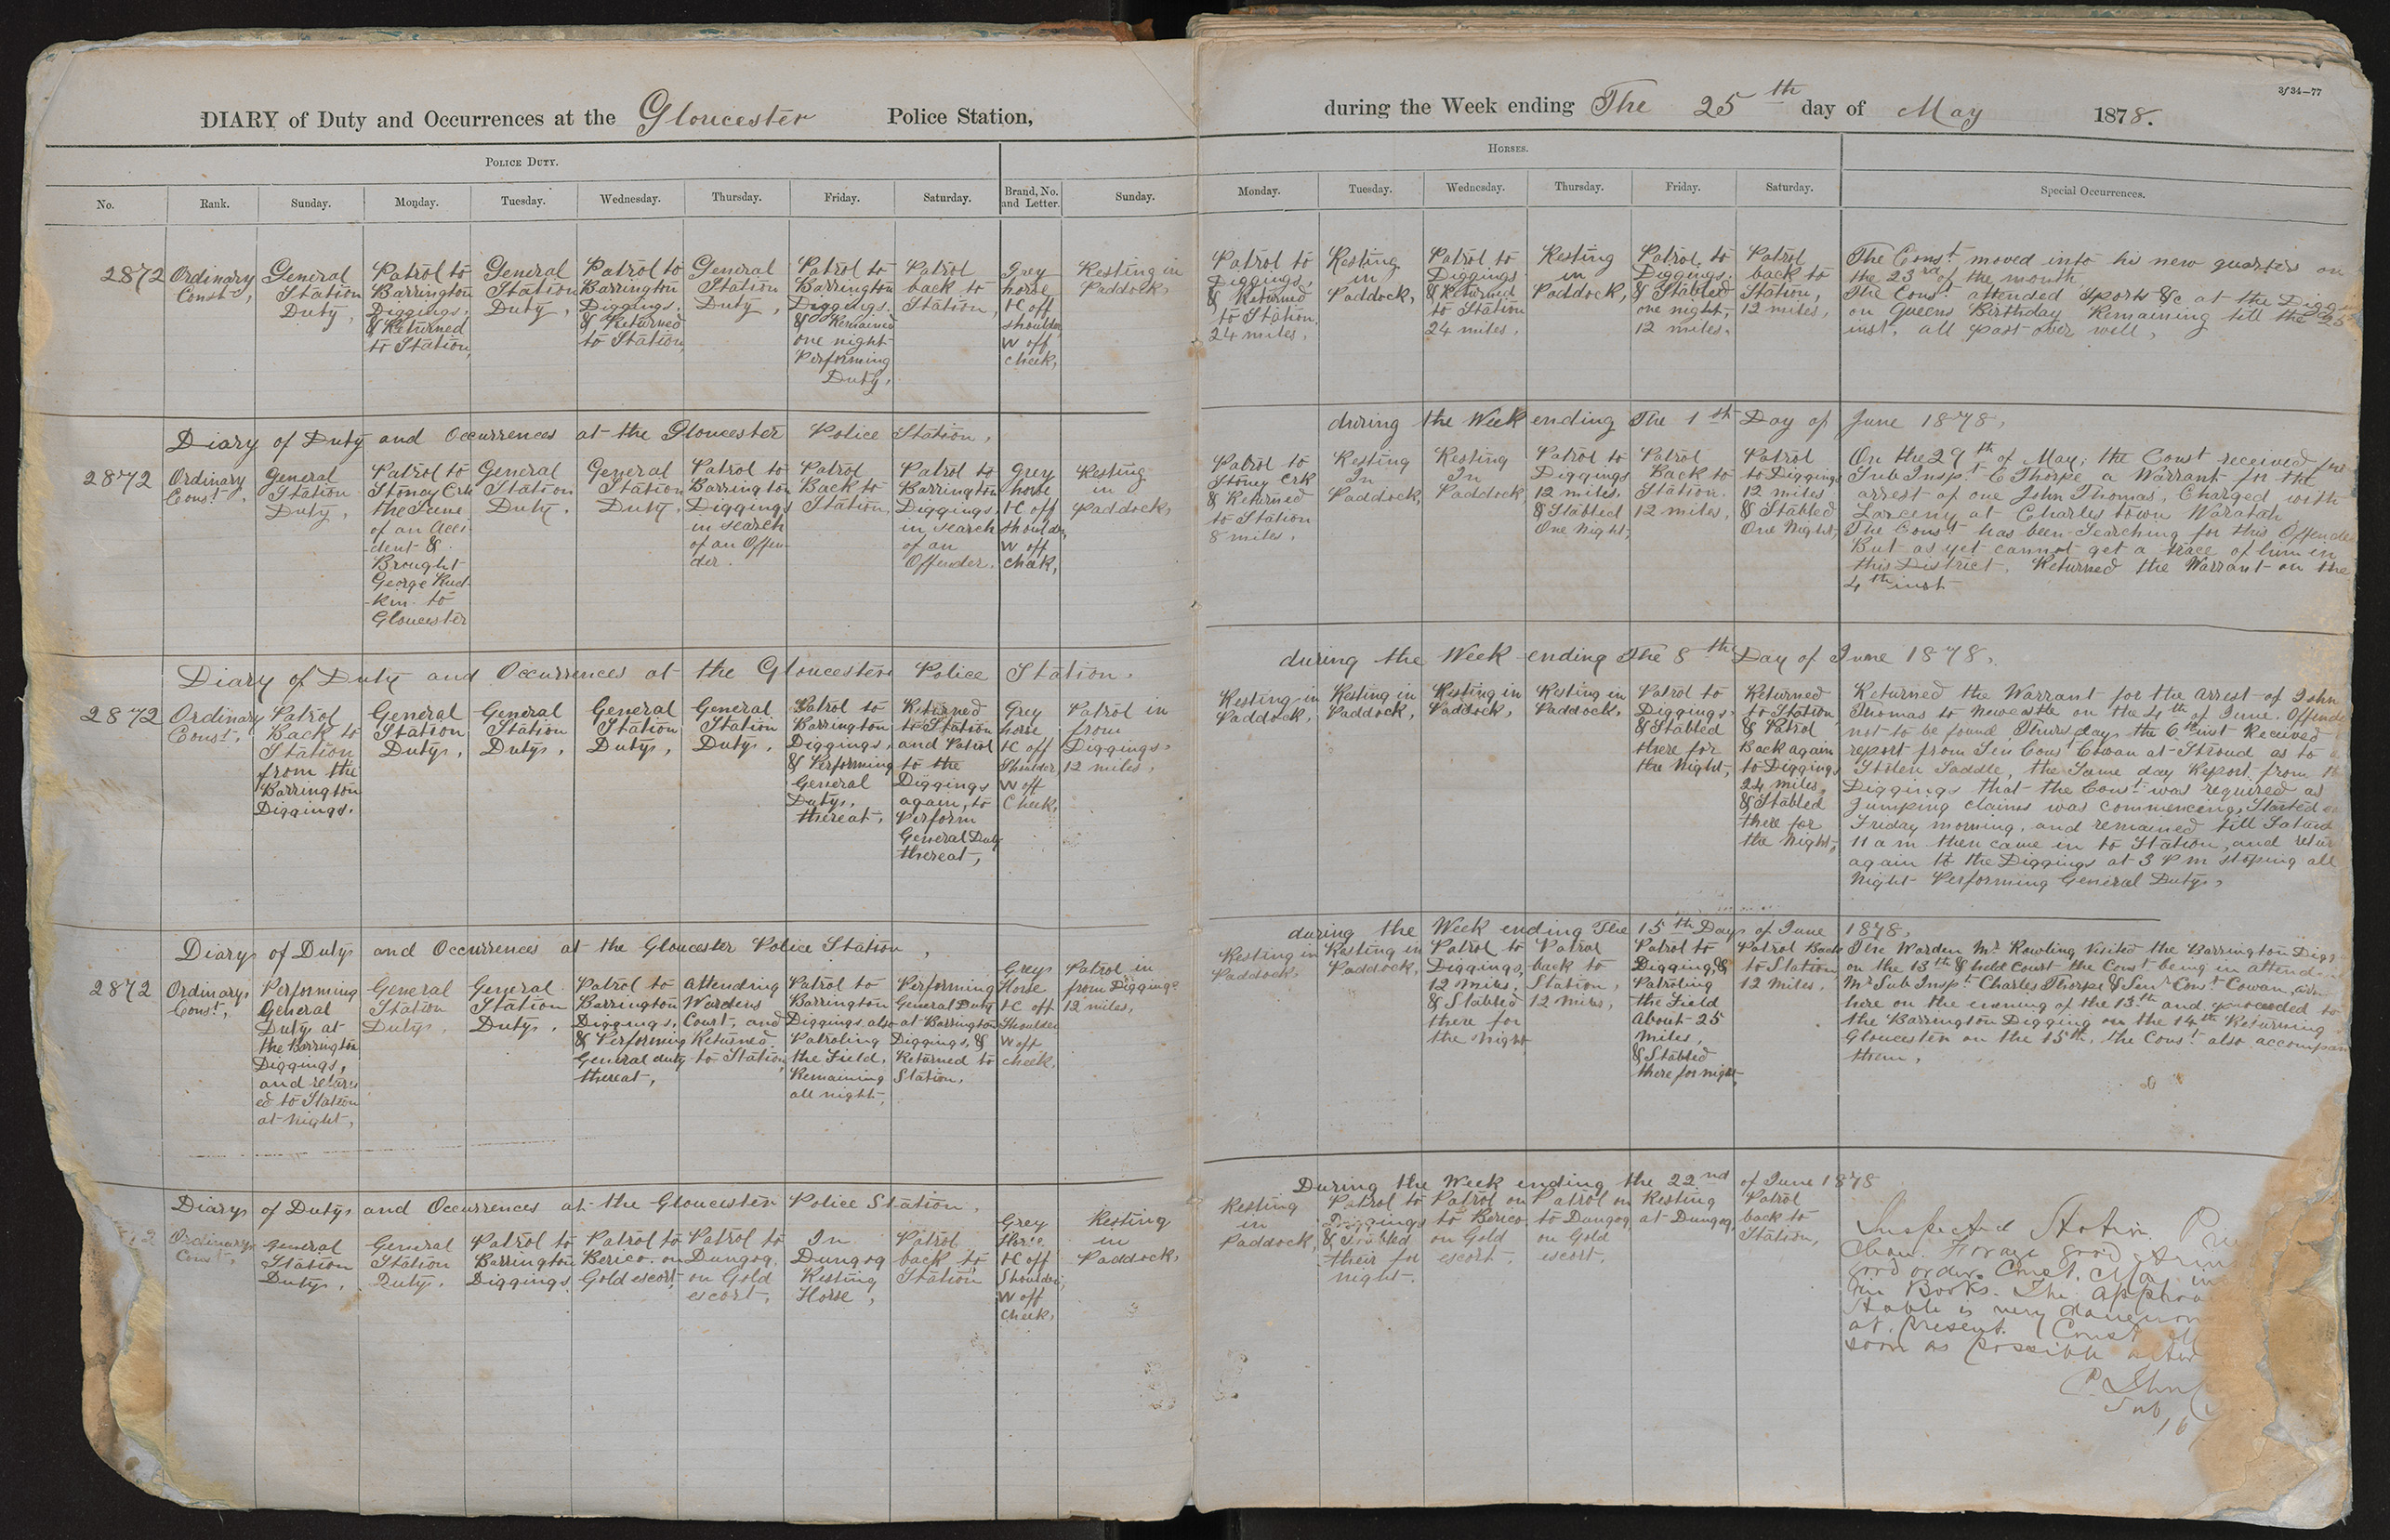 Diary of duty and occurrences at the Gloucester Police Station during the week ending the 25th day of May 1878